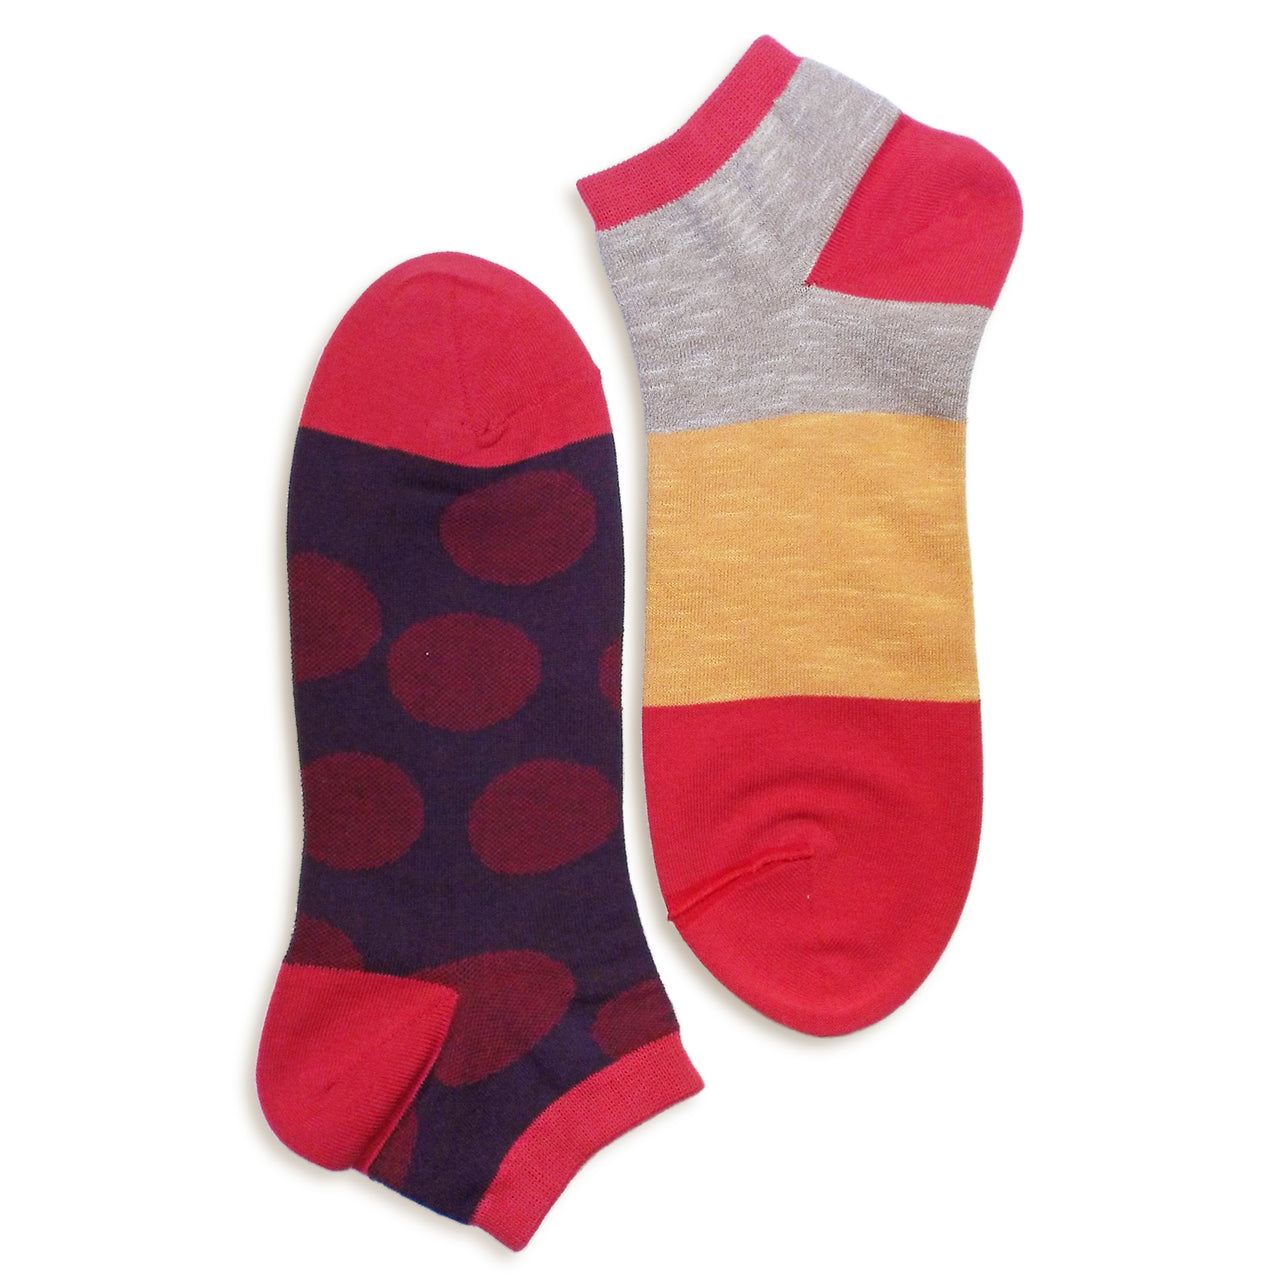 2 in 1 Reversible Socks | Polka Dot Pattern | Red - CHERRYSTONE